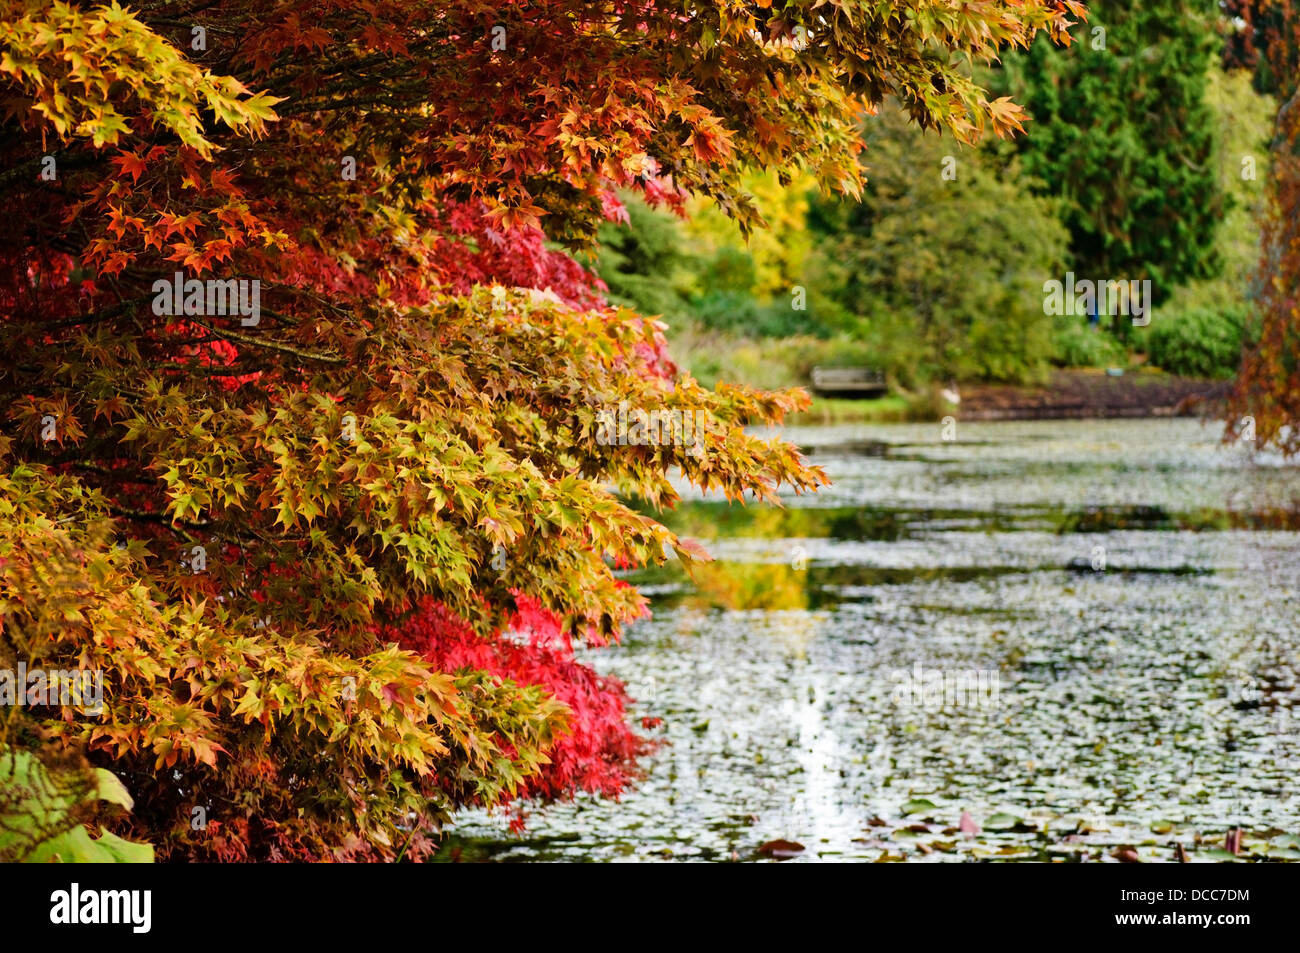 colourful-autumn-leaves-and-trees-by-a-p